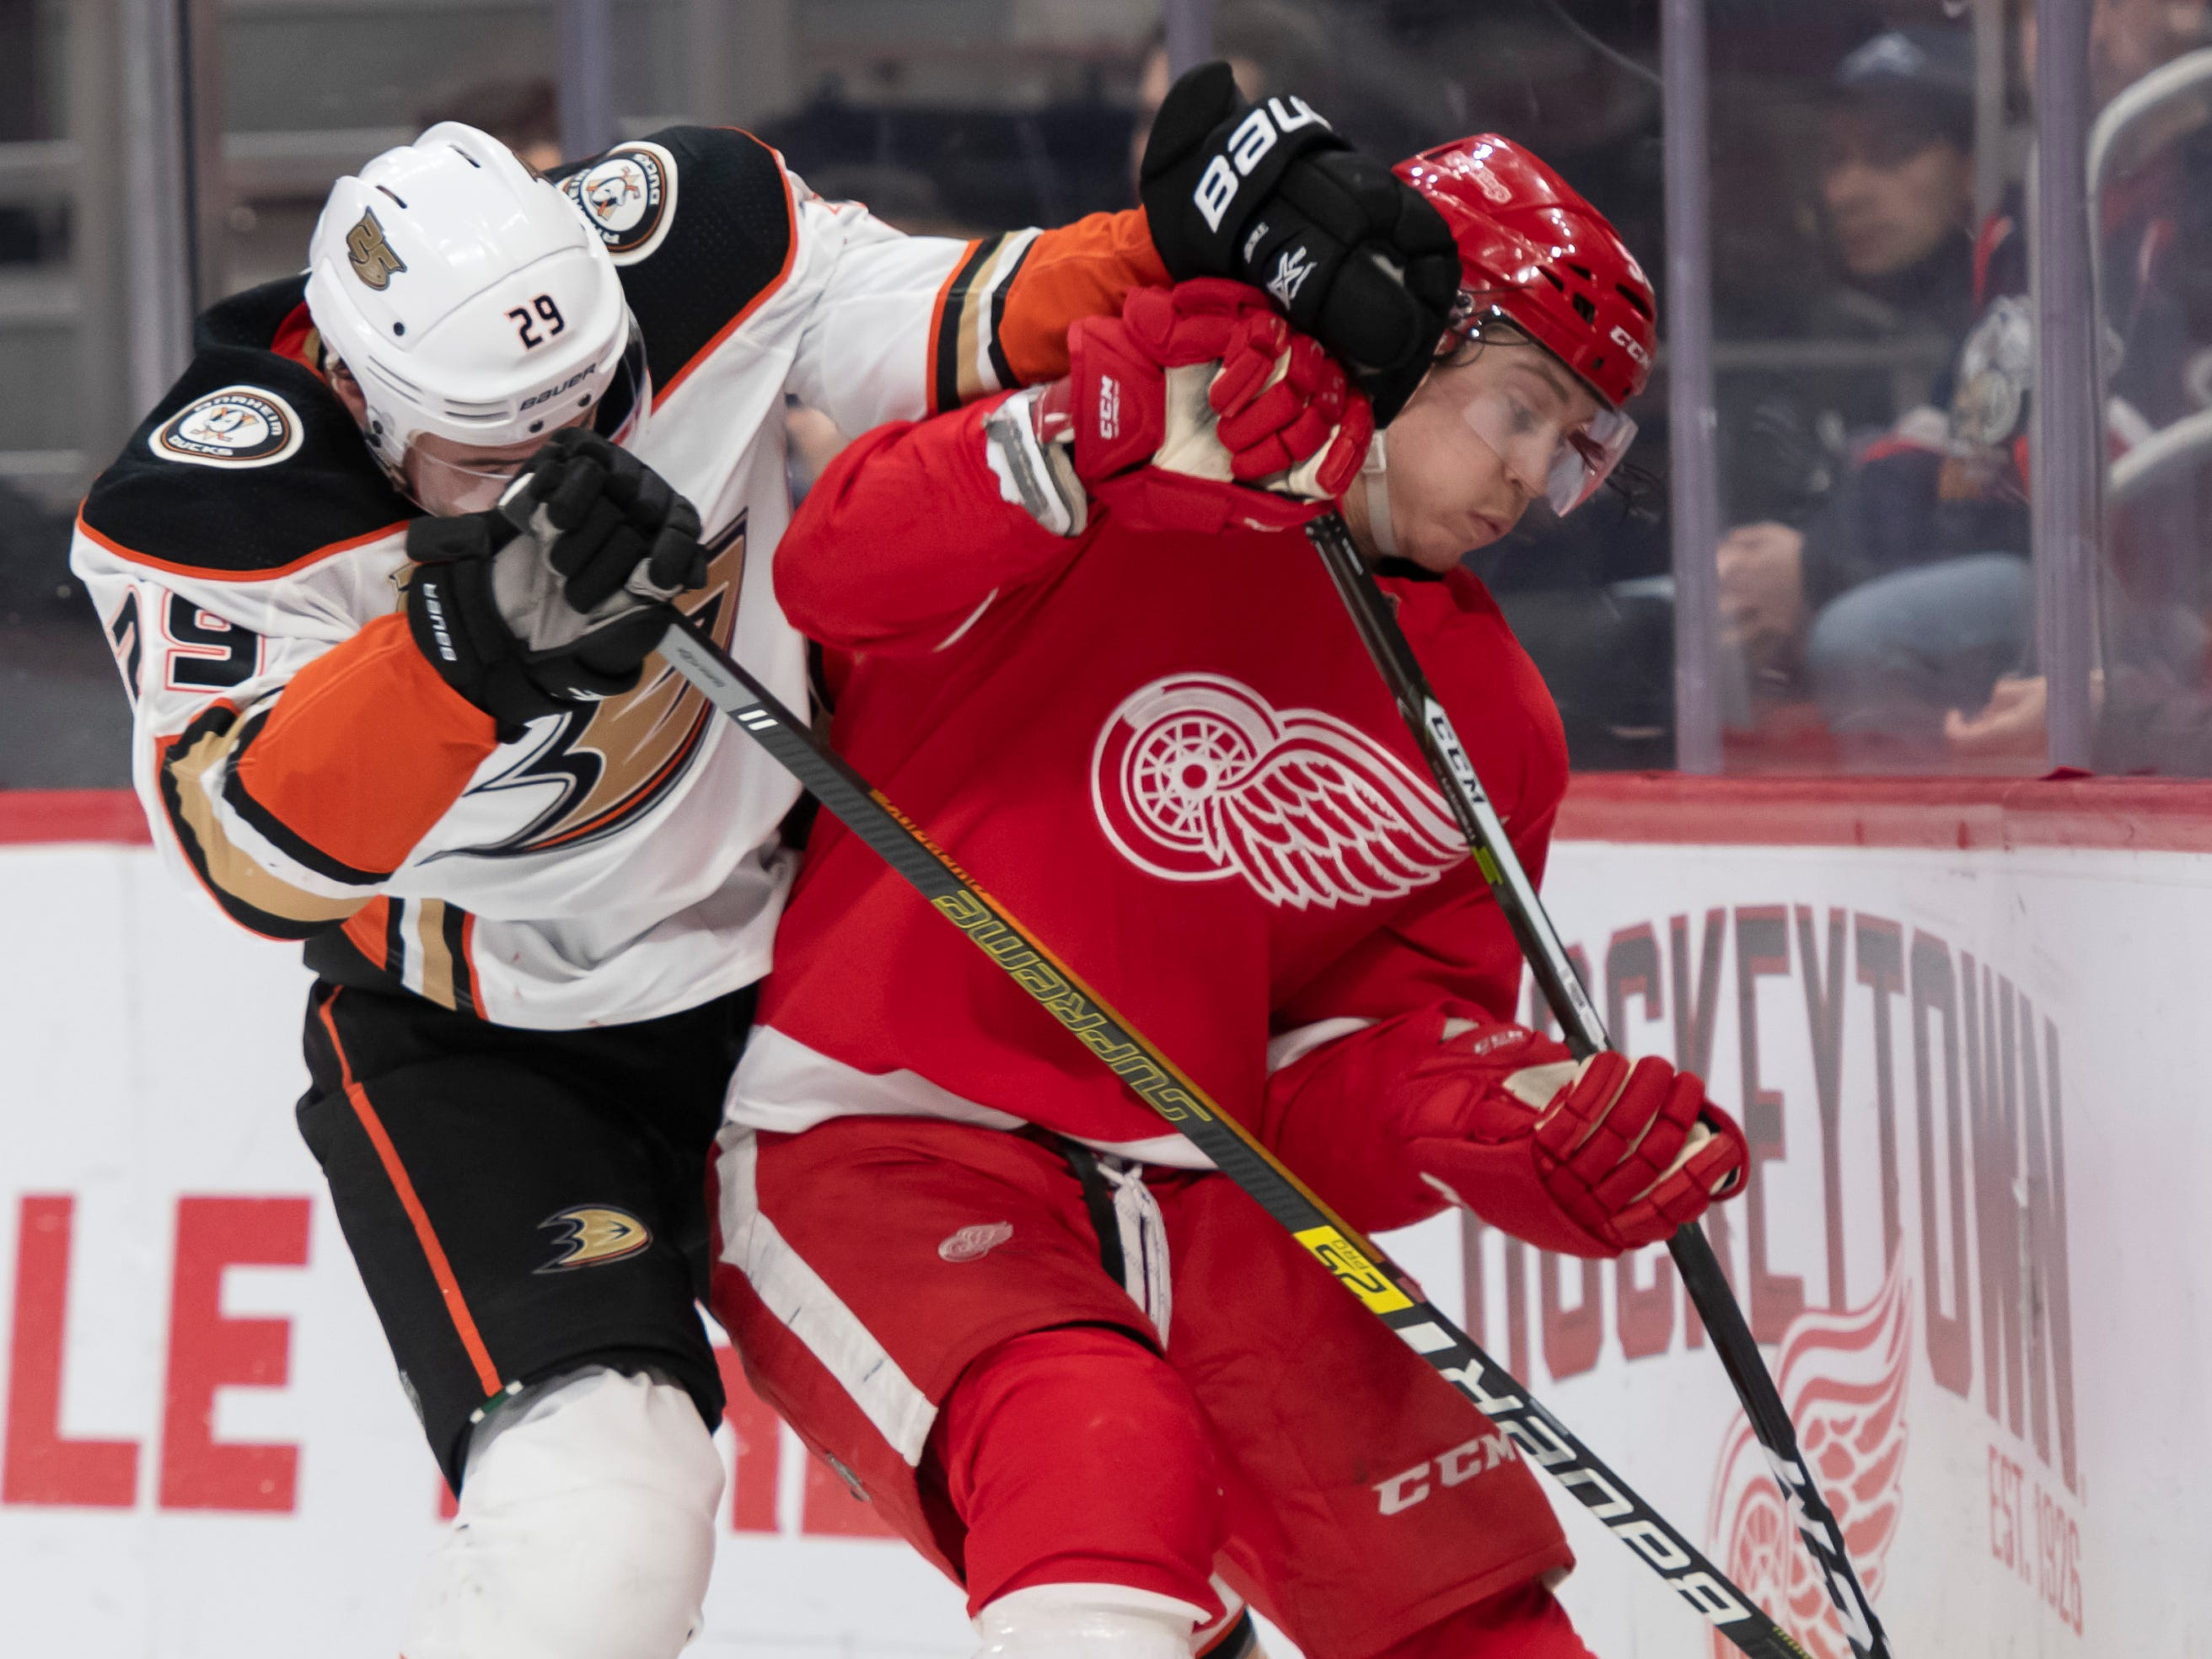 Detroit left wing Tyler Bertuzzi and Anaheim center Devin Shore battle for the puck in the second period.